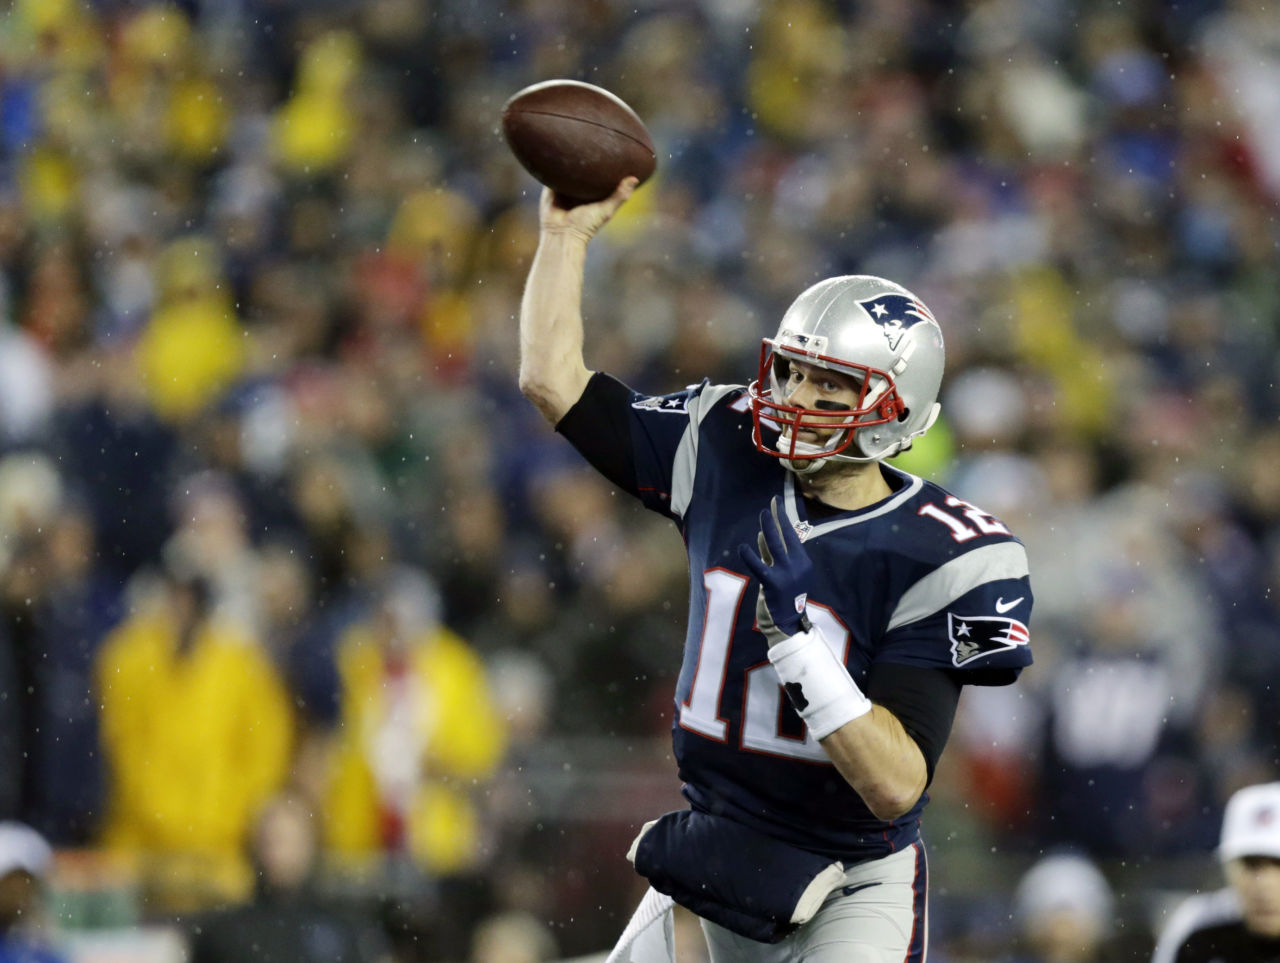 Tom Brady throws during the AFC Championship game against the Indianapolis Colts in January. (Charles Krupa/AP)